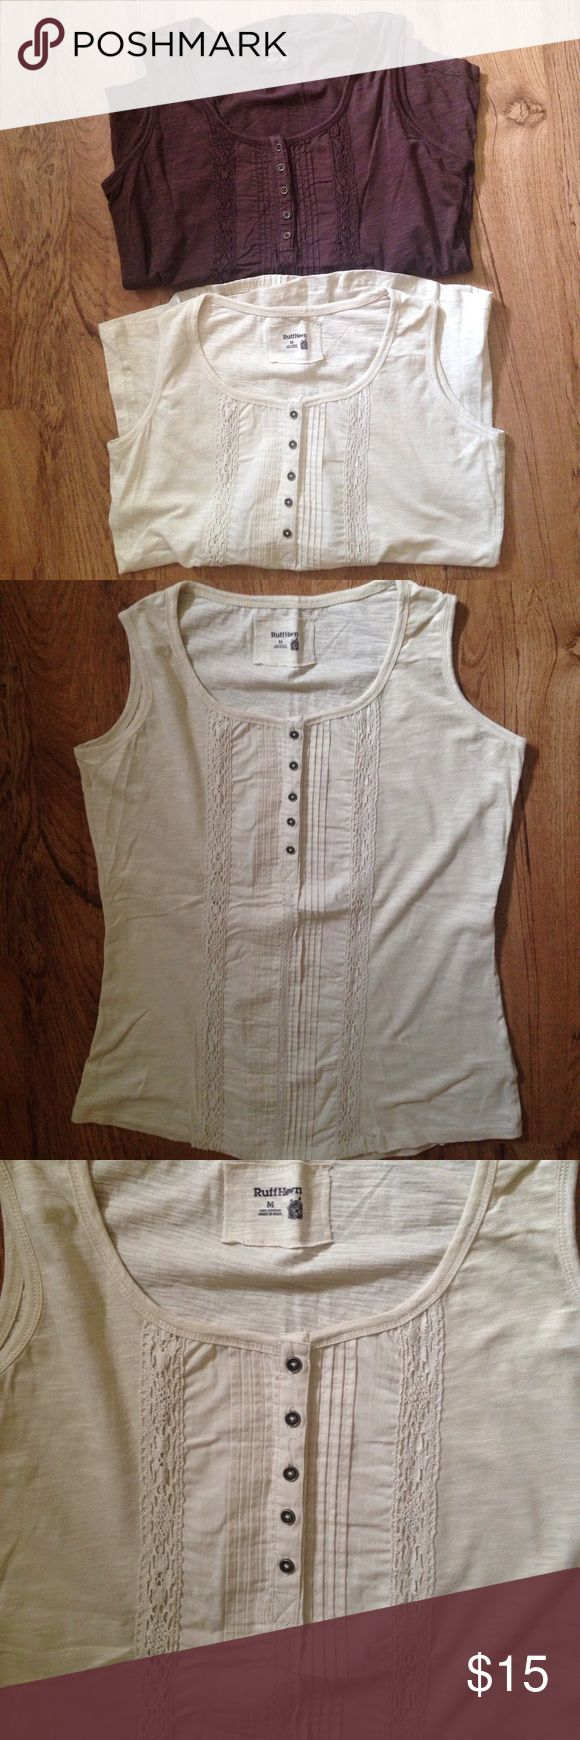 Ruff Hewn Crotchet Tanks One is beige and the other is brown. Same styles. Crotchet and pleated details on front. 100% cotton. Like new Ruff Hewn Tops Tank Tops